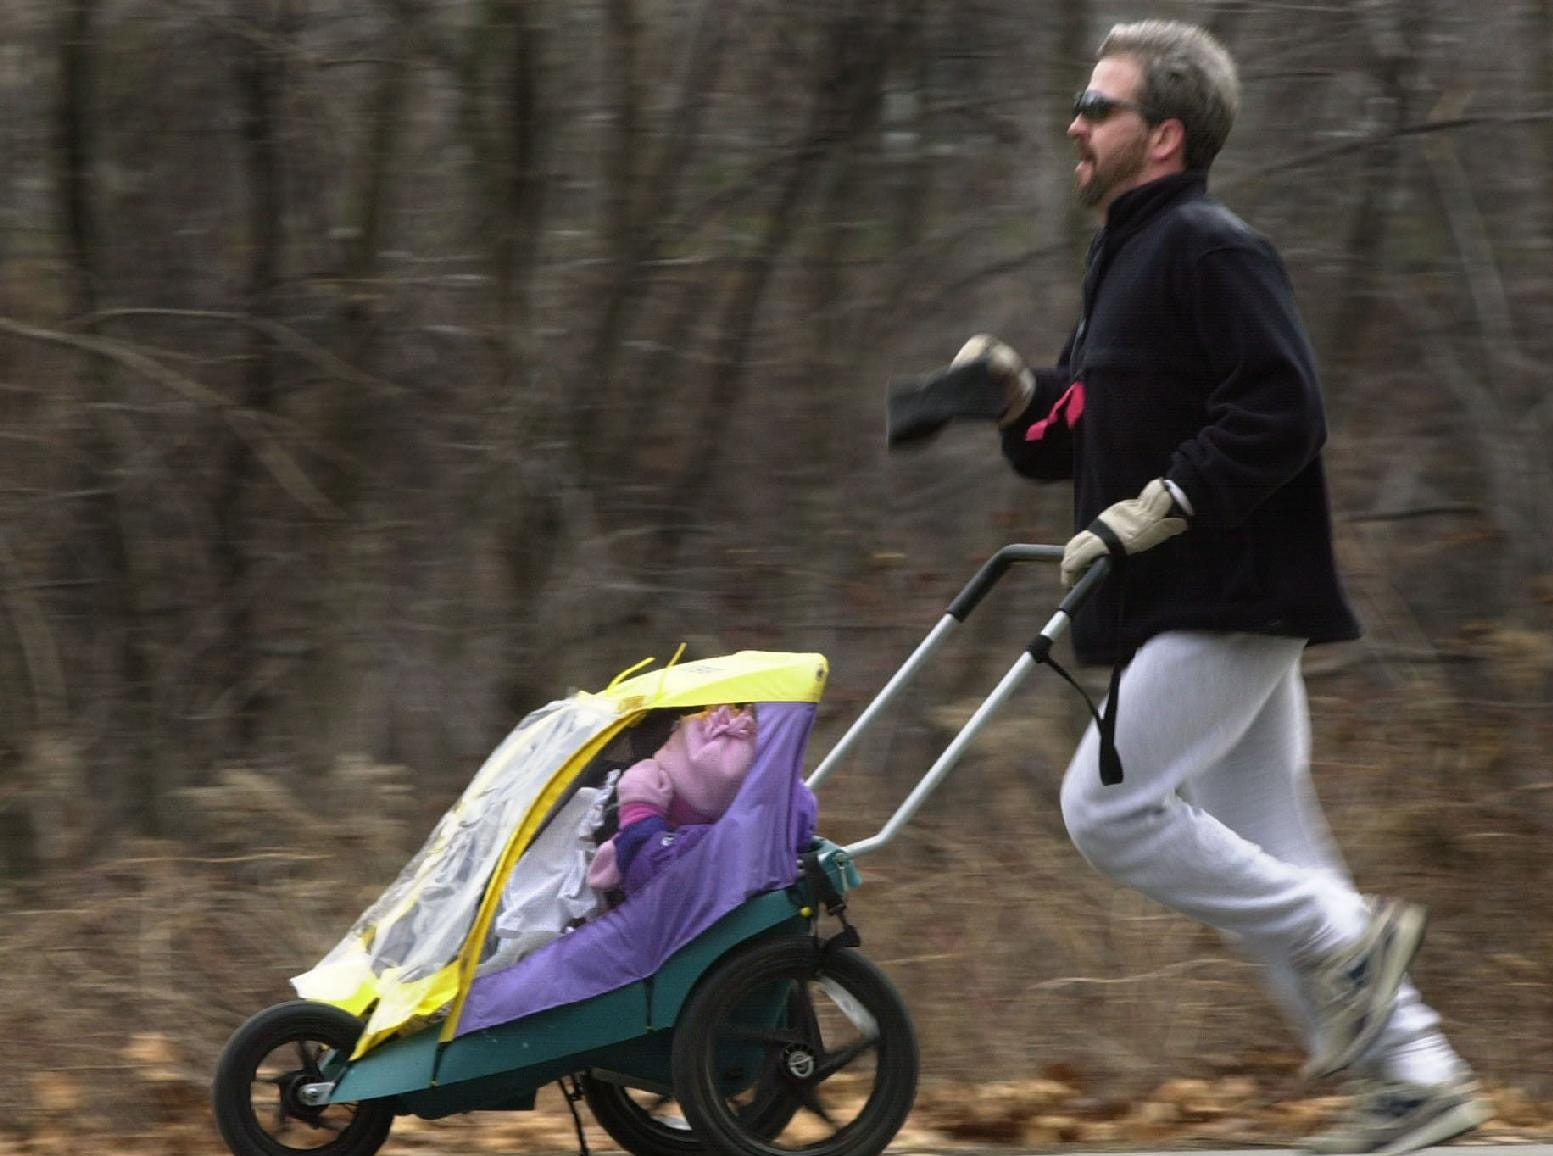 From 2001: Rick Pado of Apalachin runs along an Otsiningo Park pathway pushing a stroller with his children Richard, 5, and Alexandra, 3, inside during the annual YMCA Resolution Run.